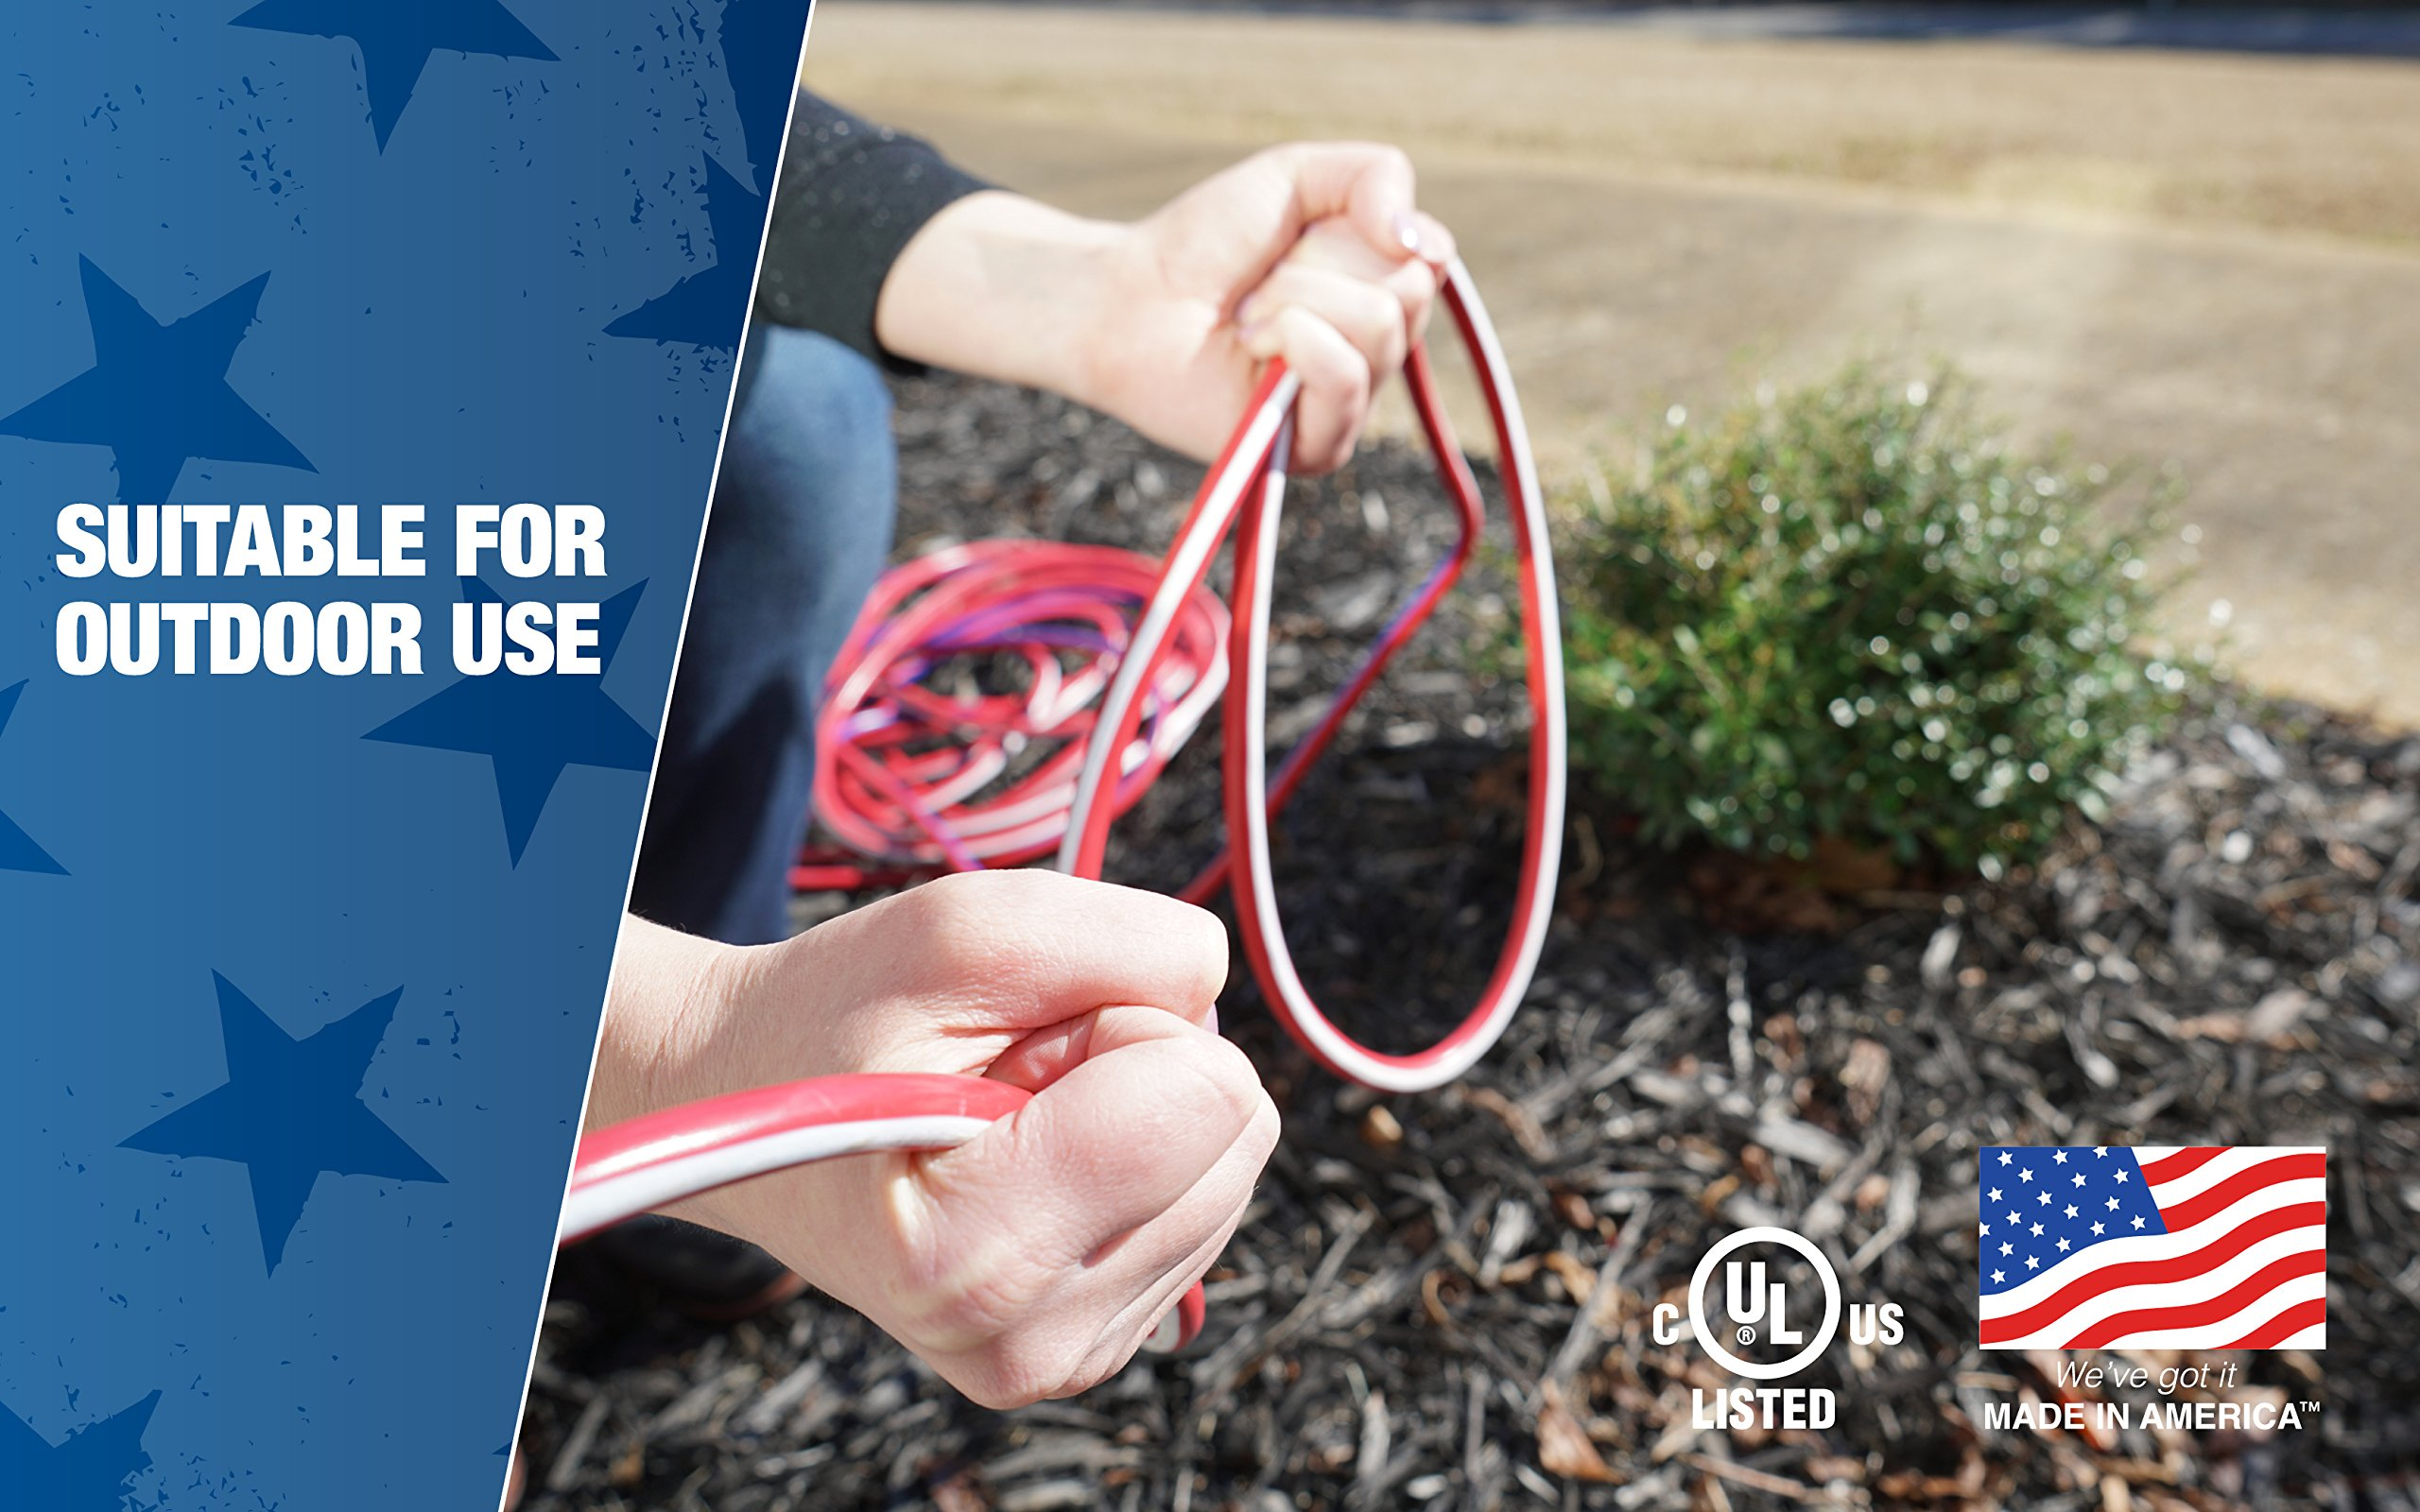 Southwire 2549SWUSA1 100-Feet Contractor Grade 12/3 with Lighted End American Made Extension Cord by Southwire (Image #3)